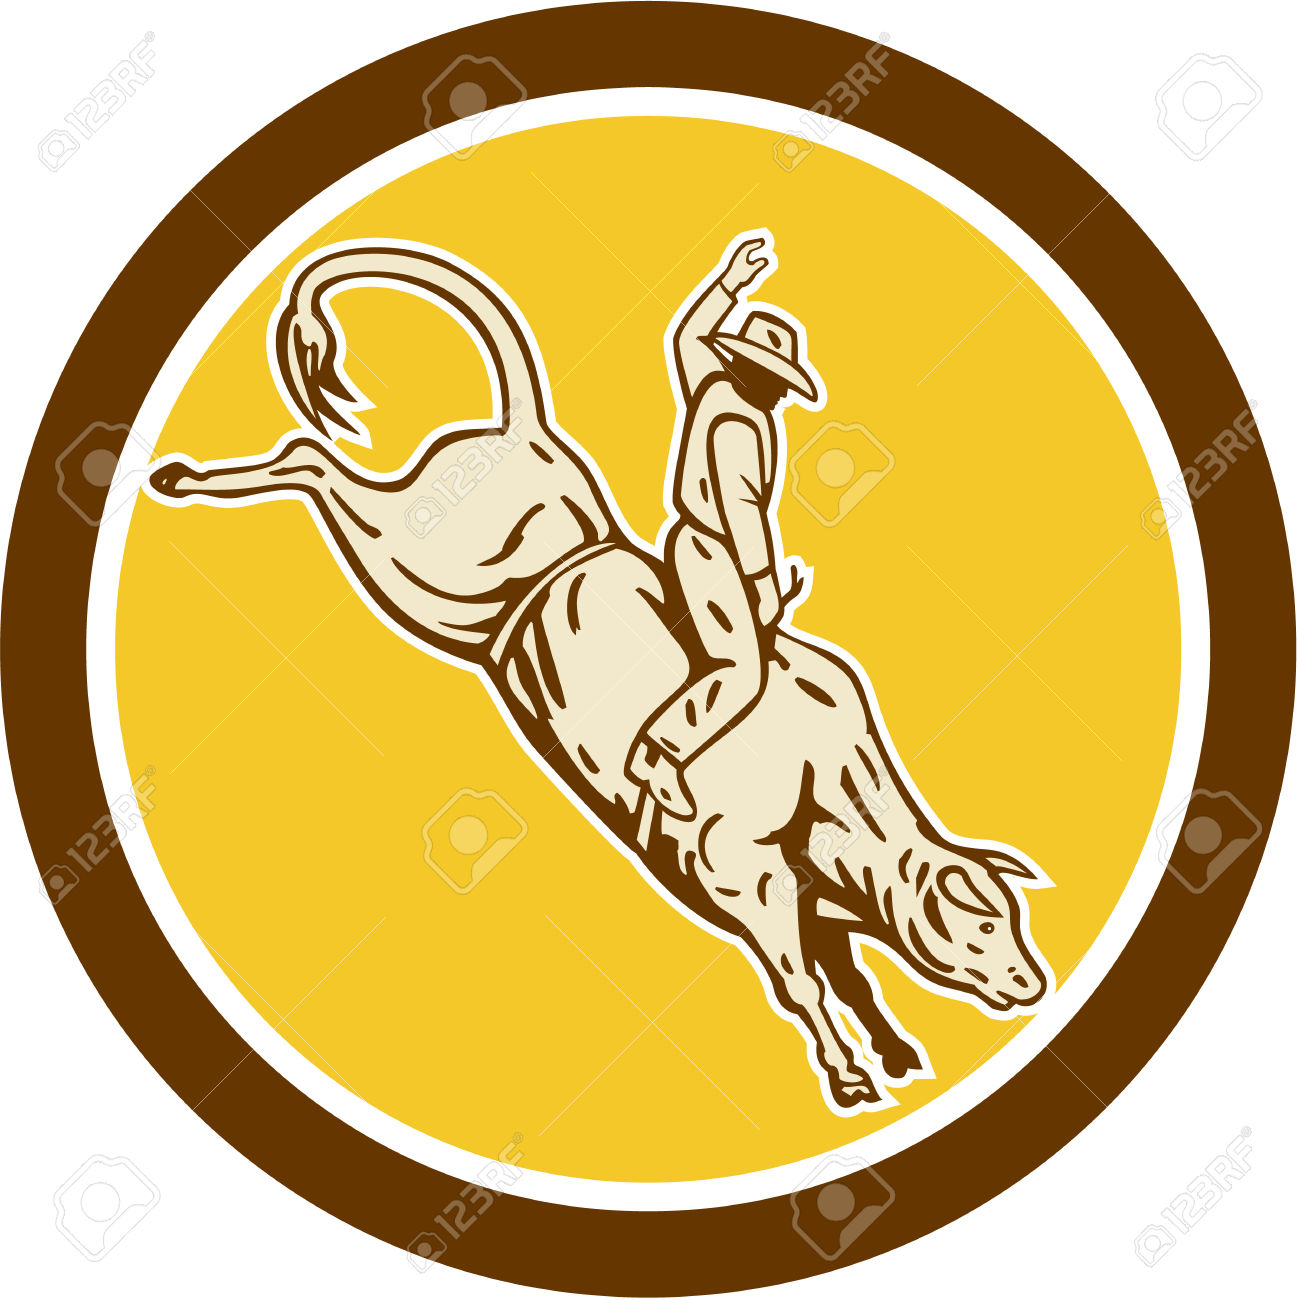 200 Bucking Bull Stock Illustrations, Cliparts And Royalty Free.